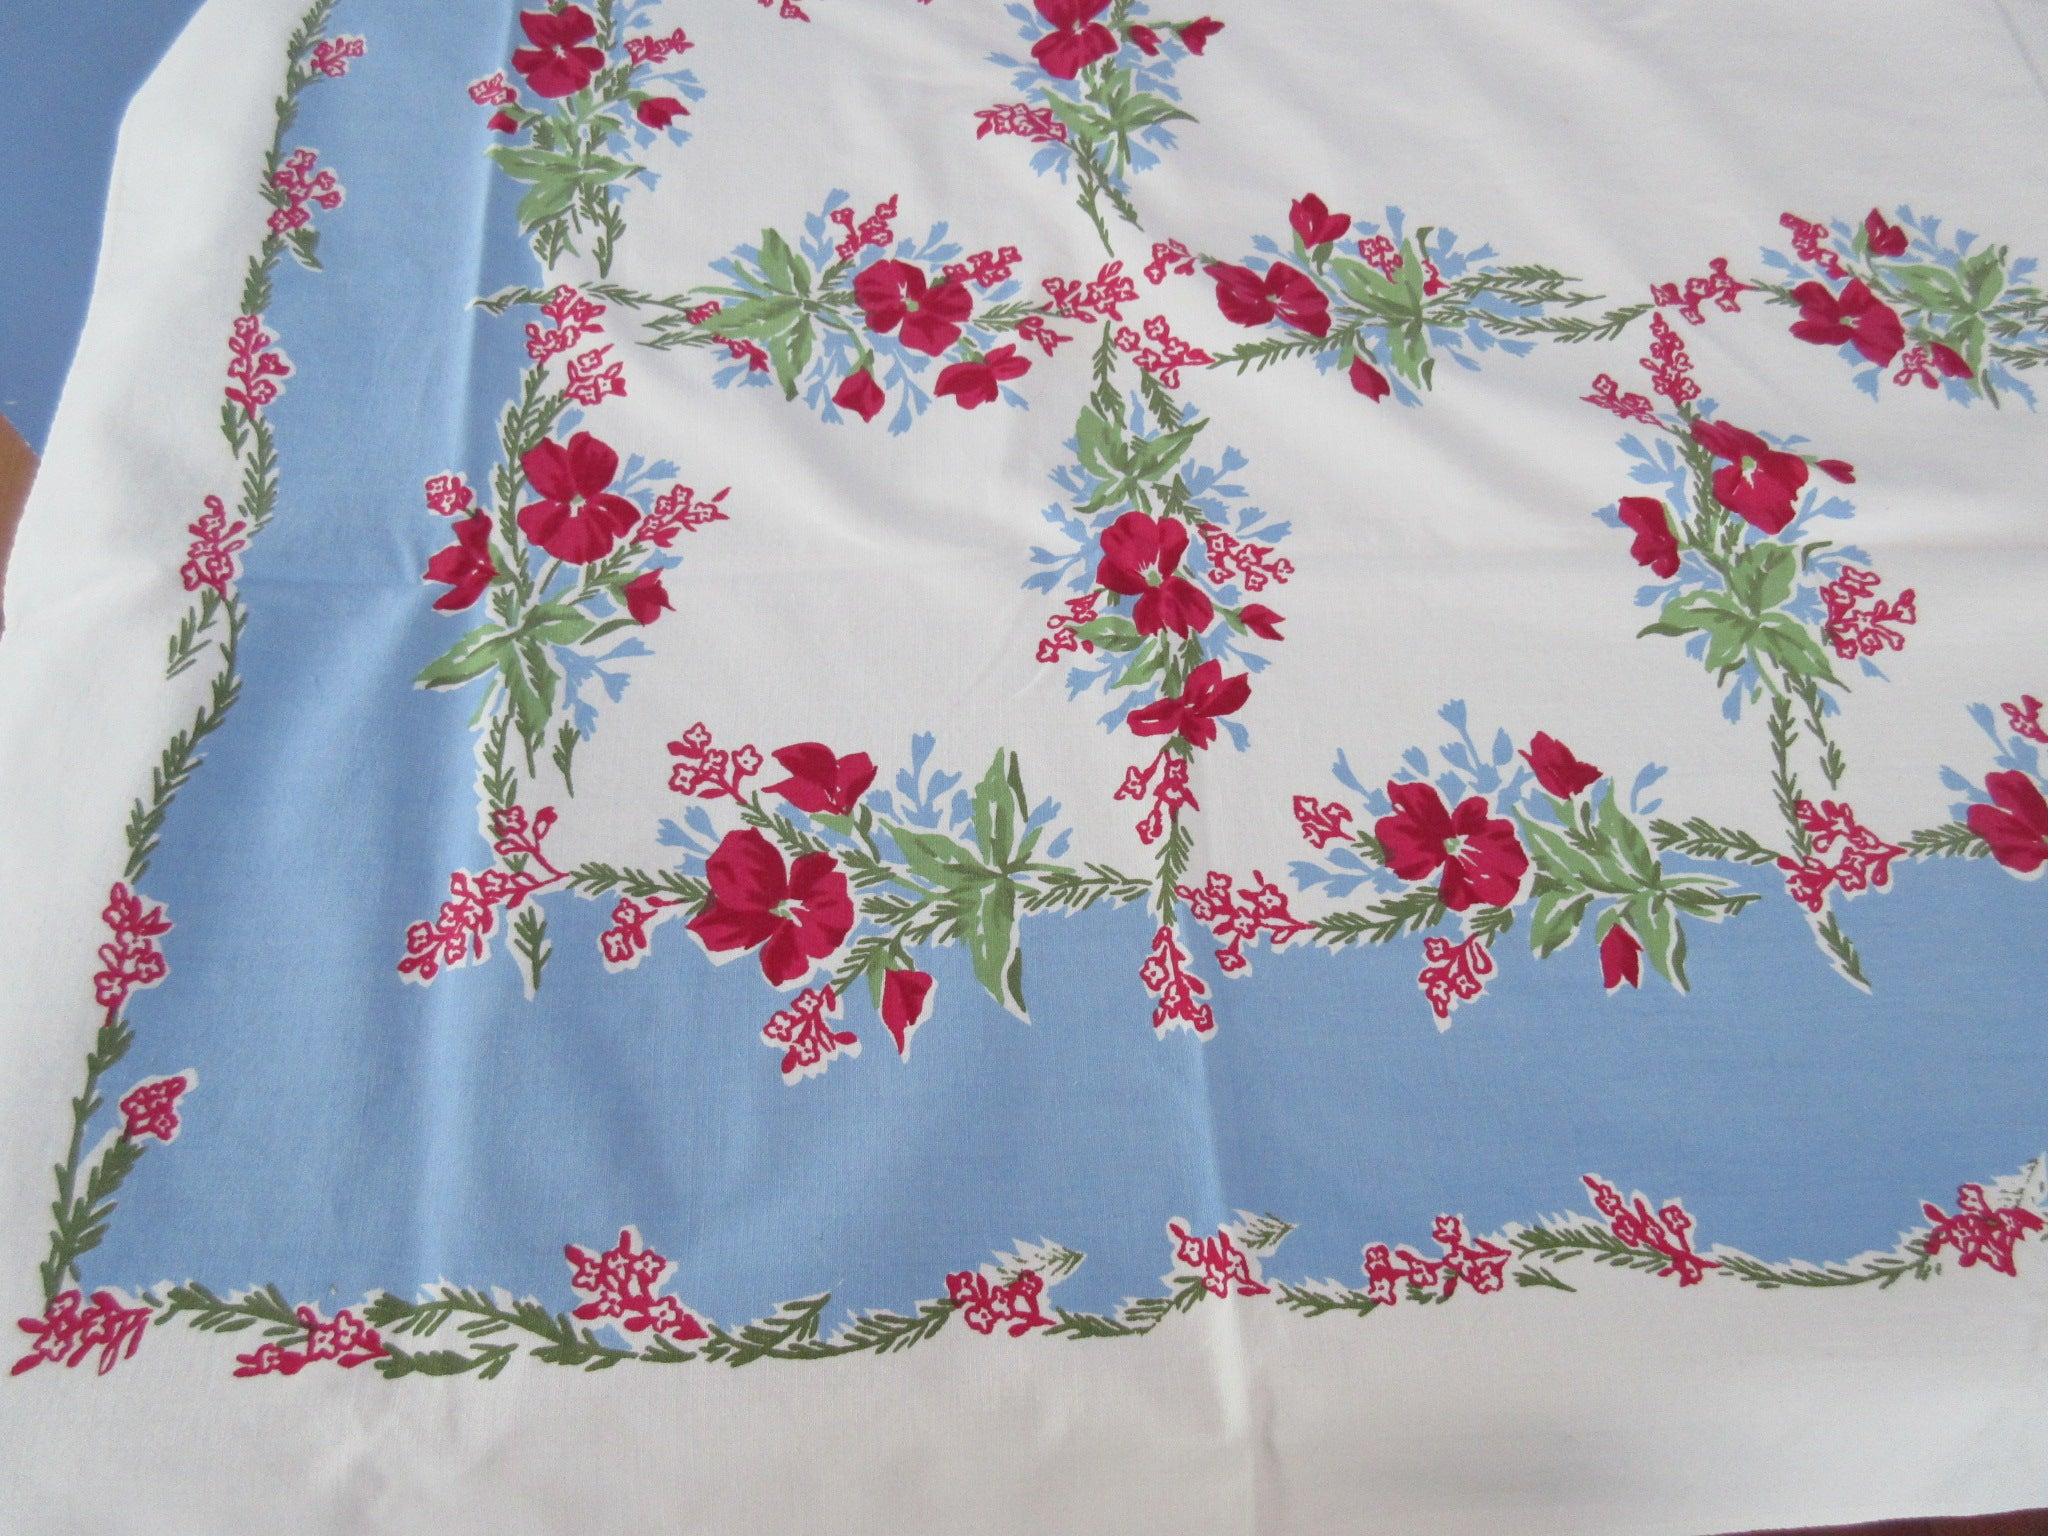 Bright Lipstick Red Pink Violas on Blue Floral Vintage Printed Tablecloth (63 X 50)